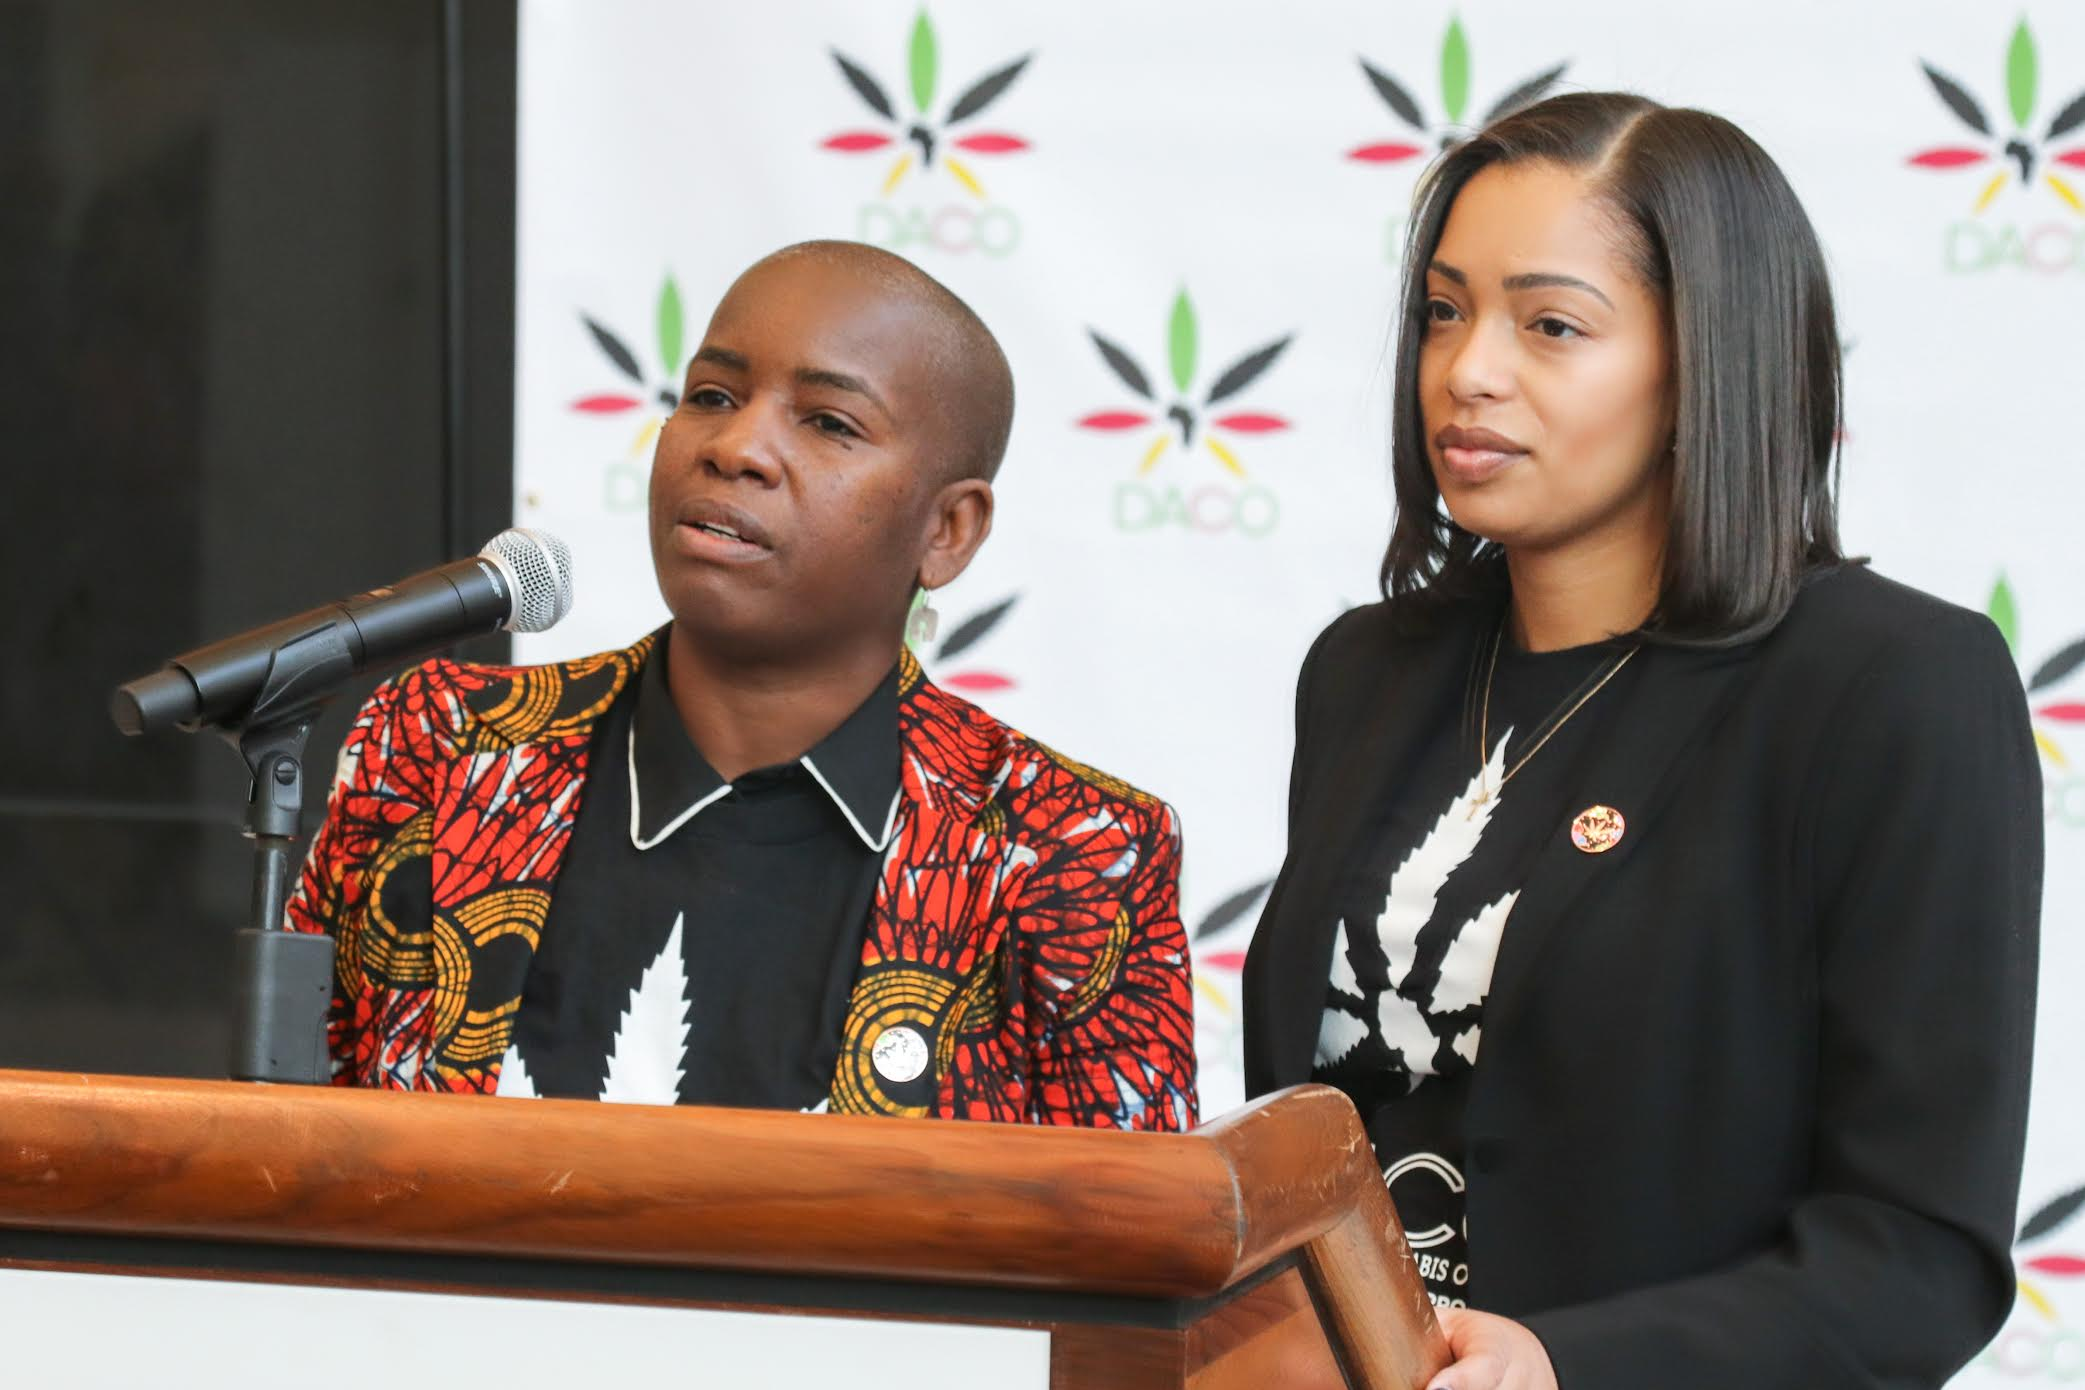 Two Black Women Launch Cannabis Opportunity Conference To Increase Minority Presence In Marijuana Industry